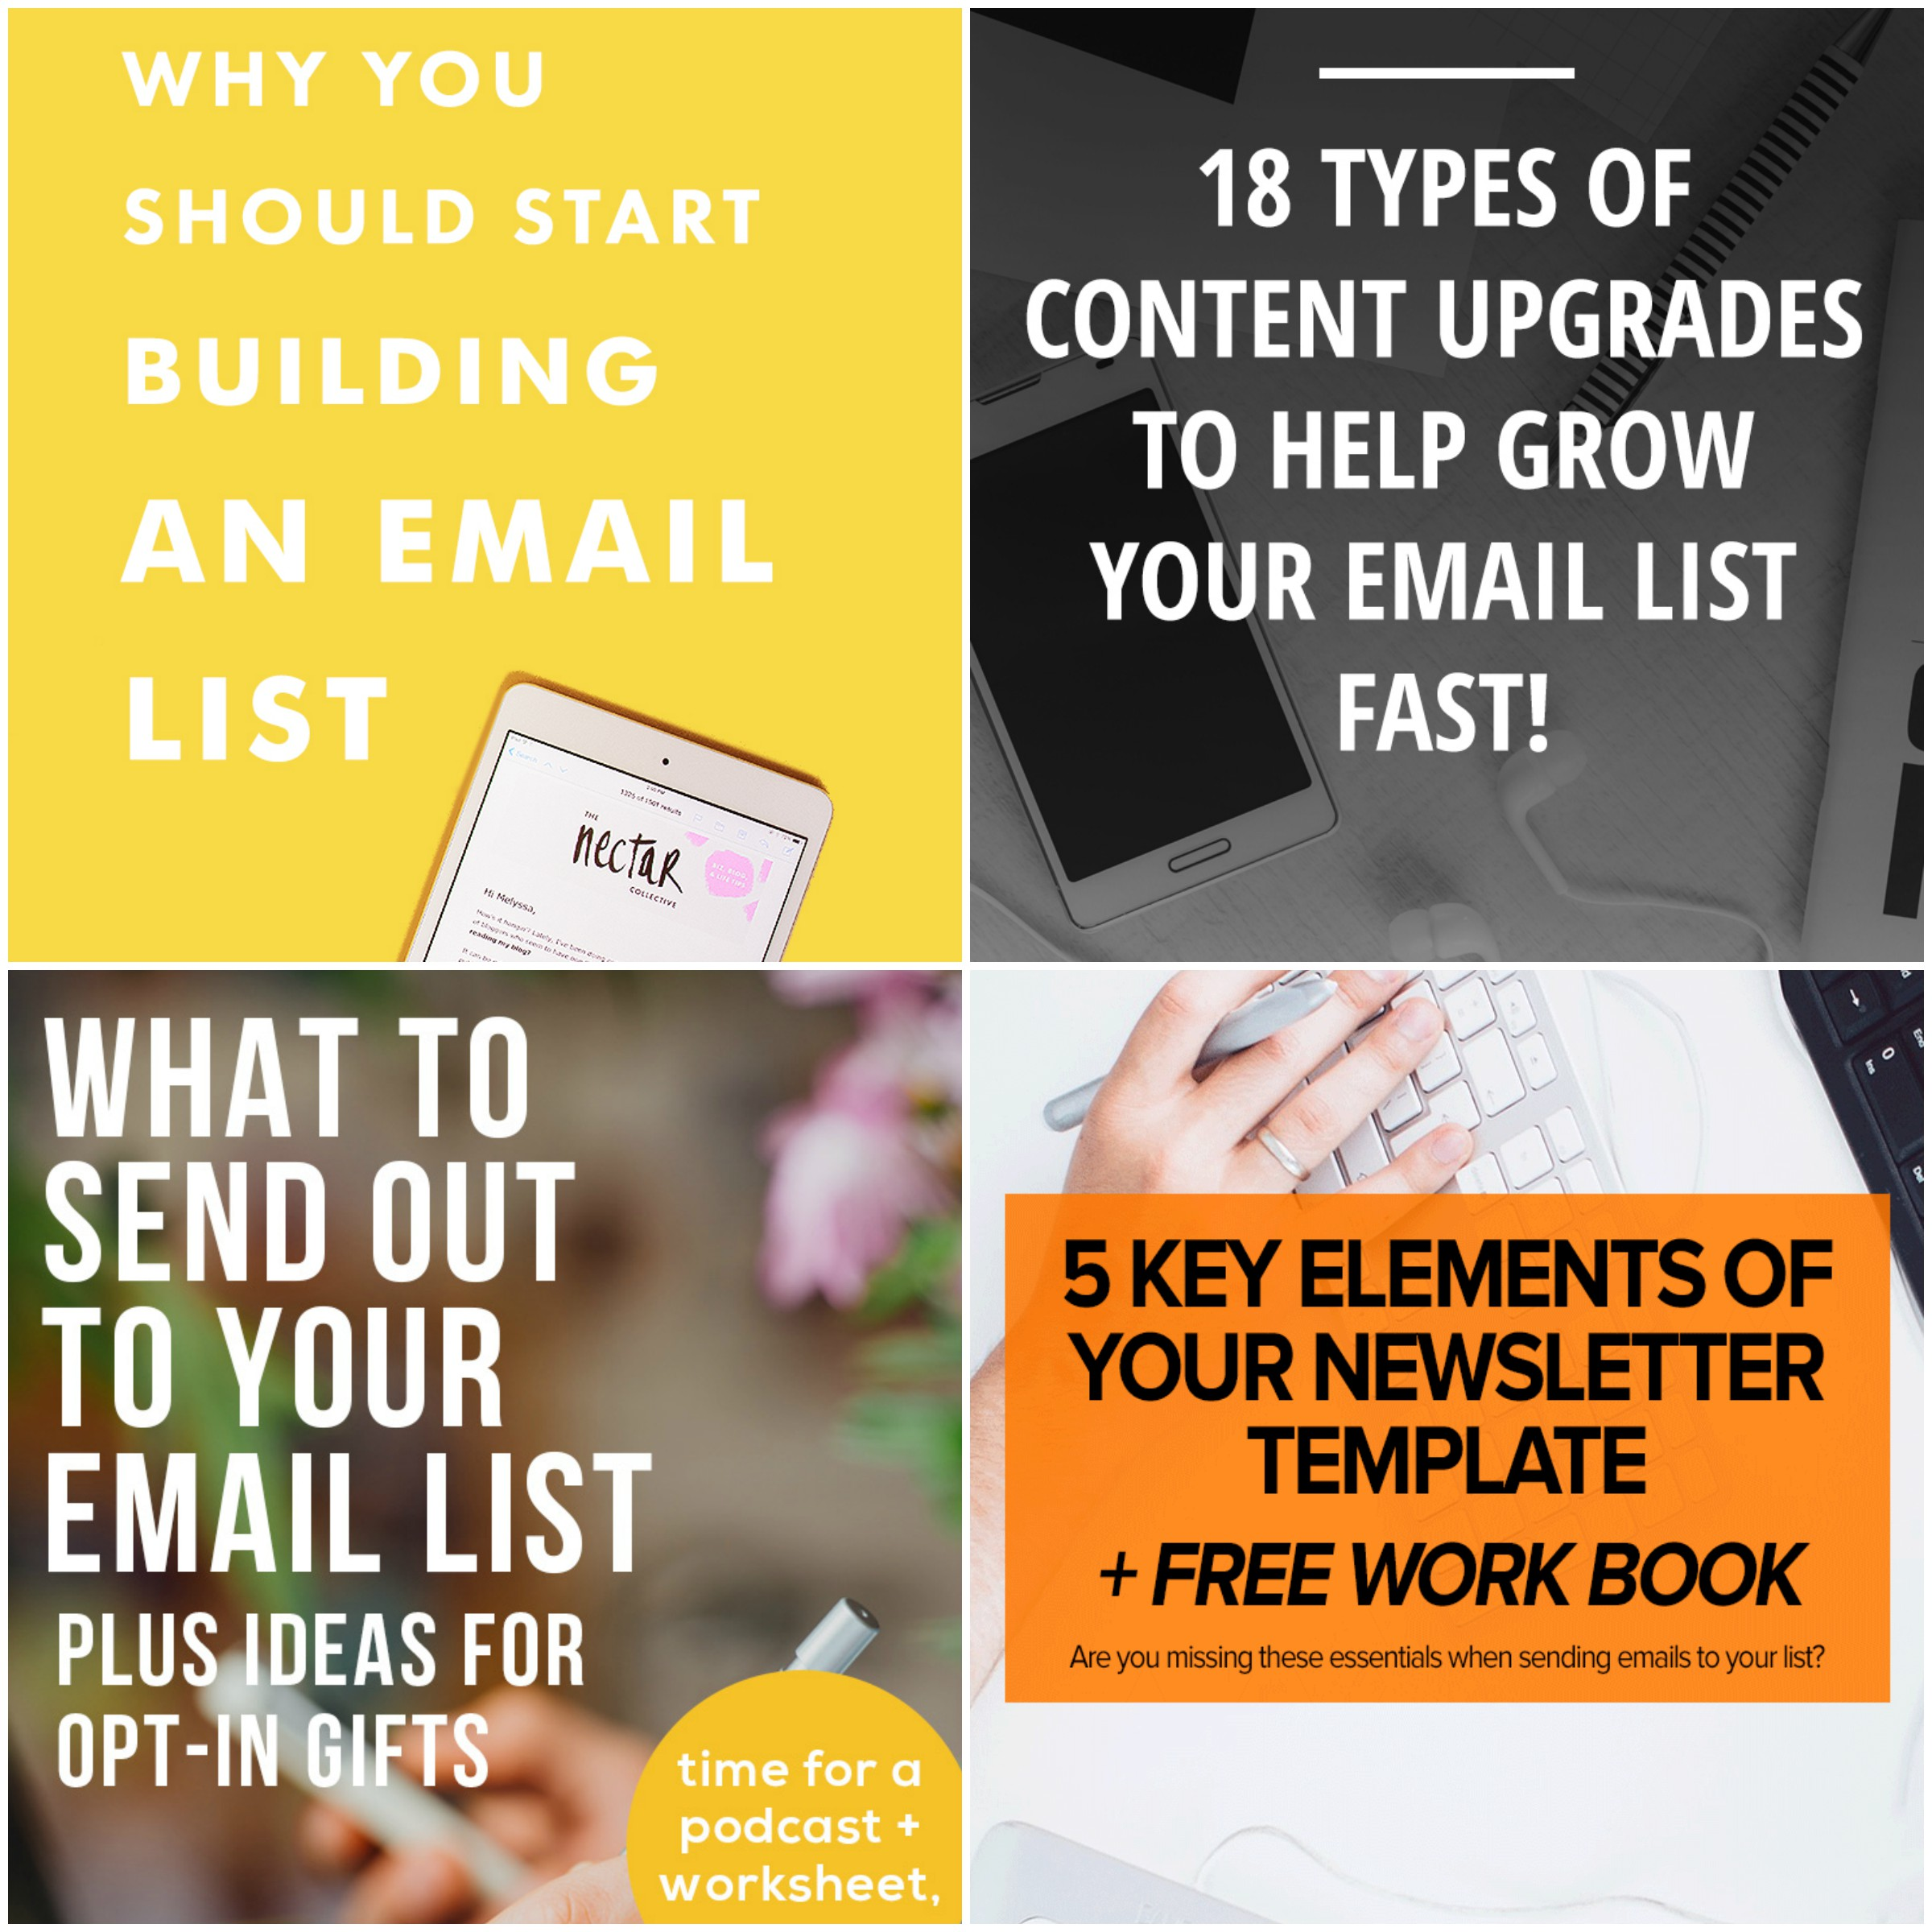 Why You Should Start Building An Email List via The Nectar Collective  /  18 Type Of Content Upgrades To Help Grow Your Email List via XOSarah  /  What To Send Out To Your Email List Plus Ideas For Opt-In Gifts via ByRegina  /  5 Key Elements of Your Newsletter Template via Autumn Leaves